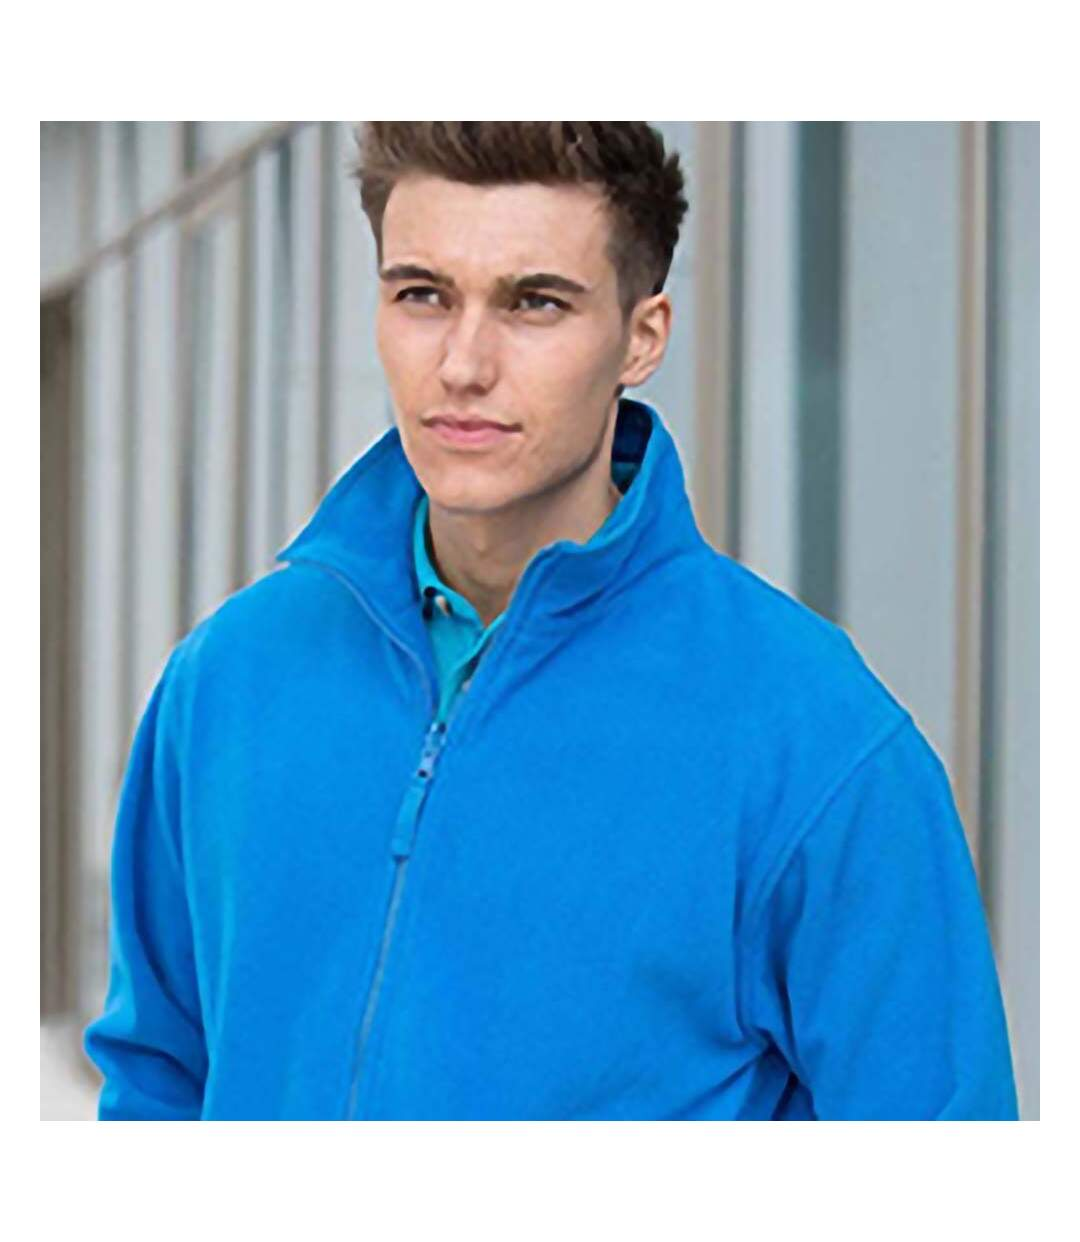 Henbury Mens Microfleece Anti-Pill Jacket (Royal) - UTRW678